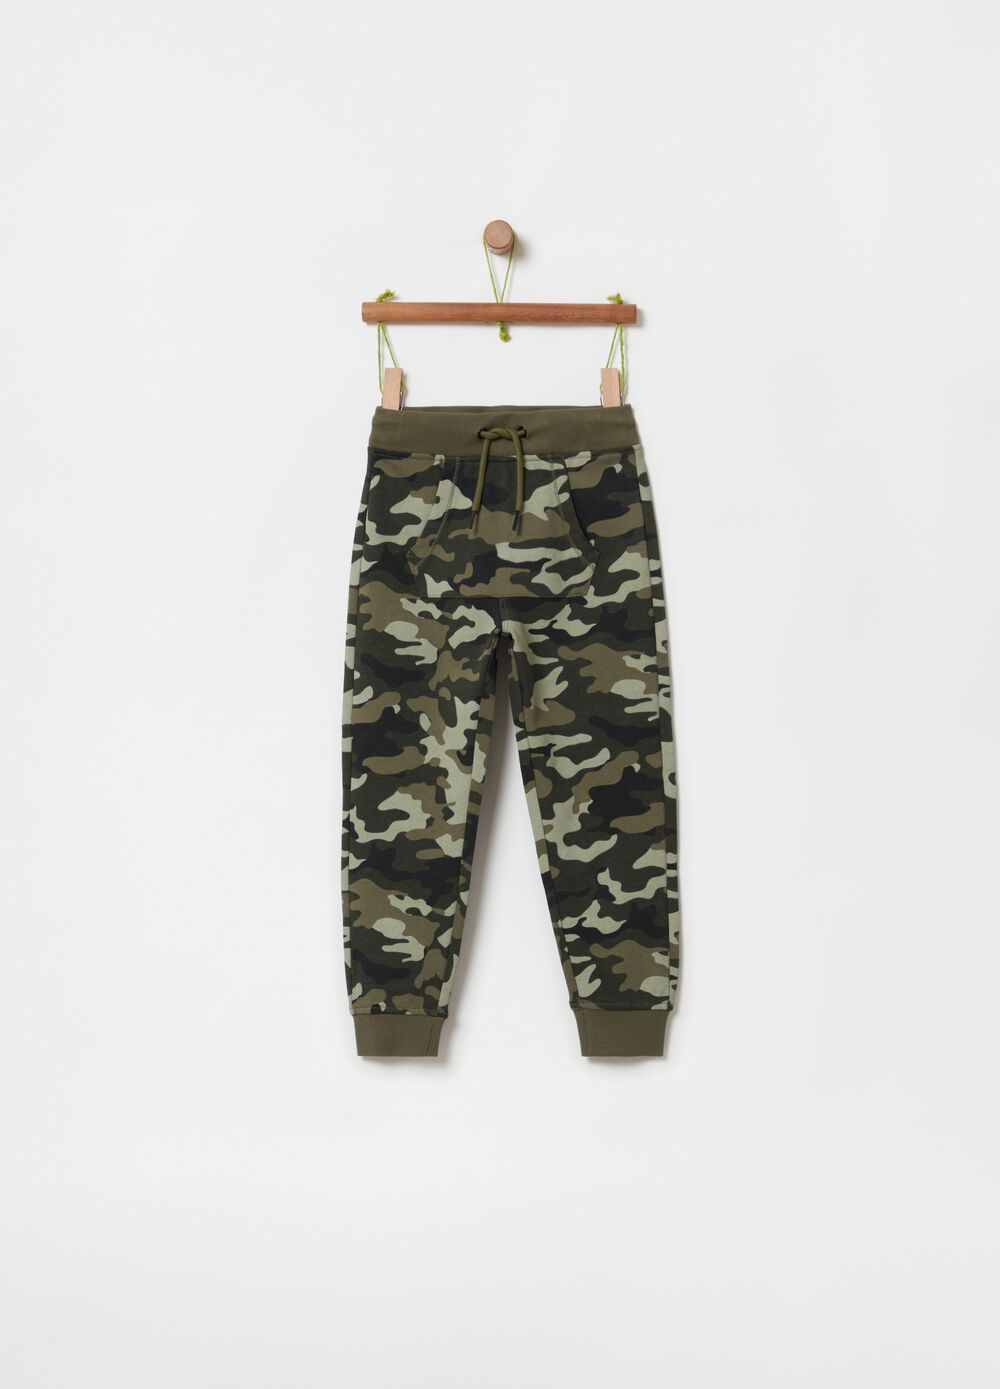 Camouflage patterned jogger trousers